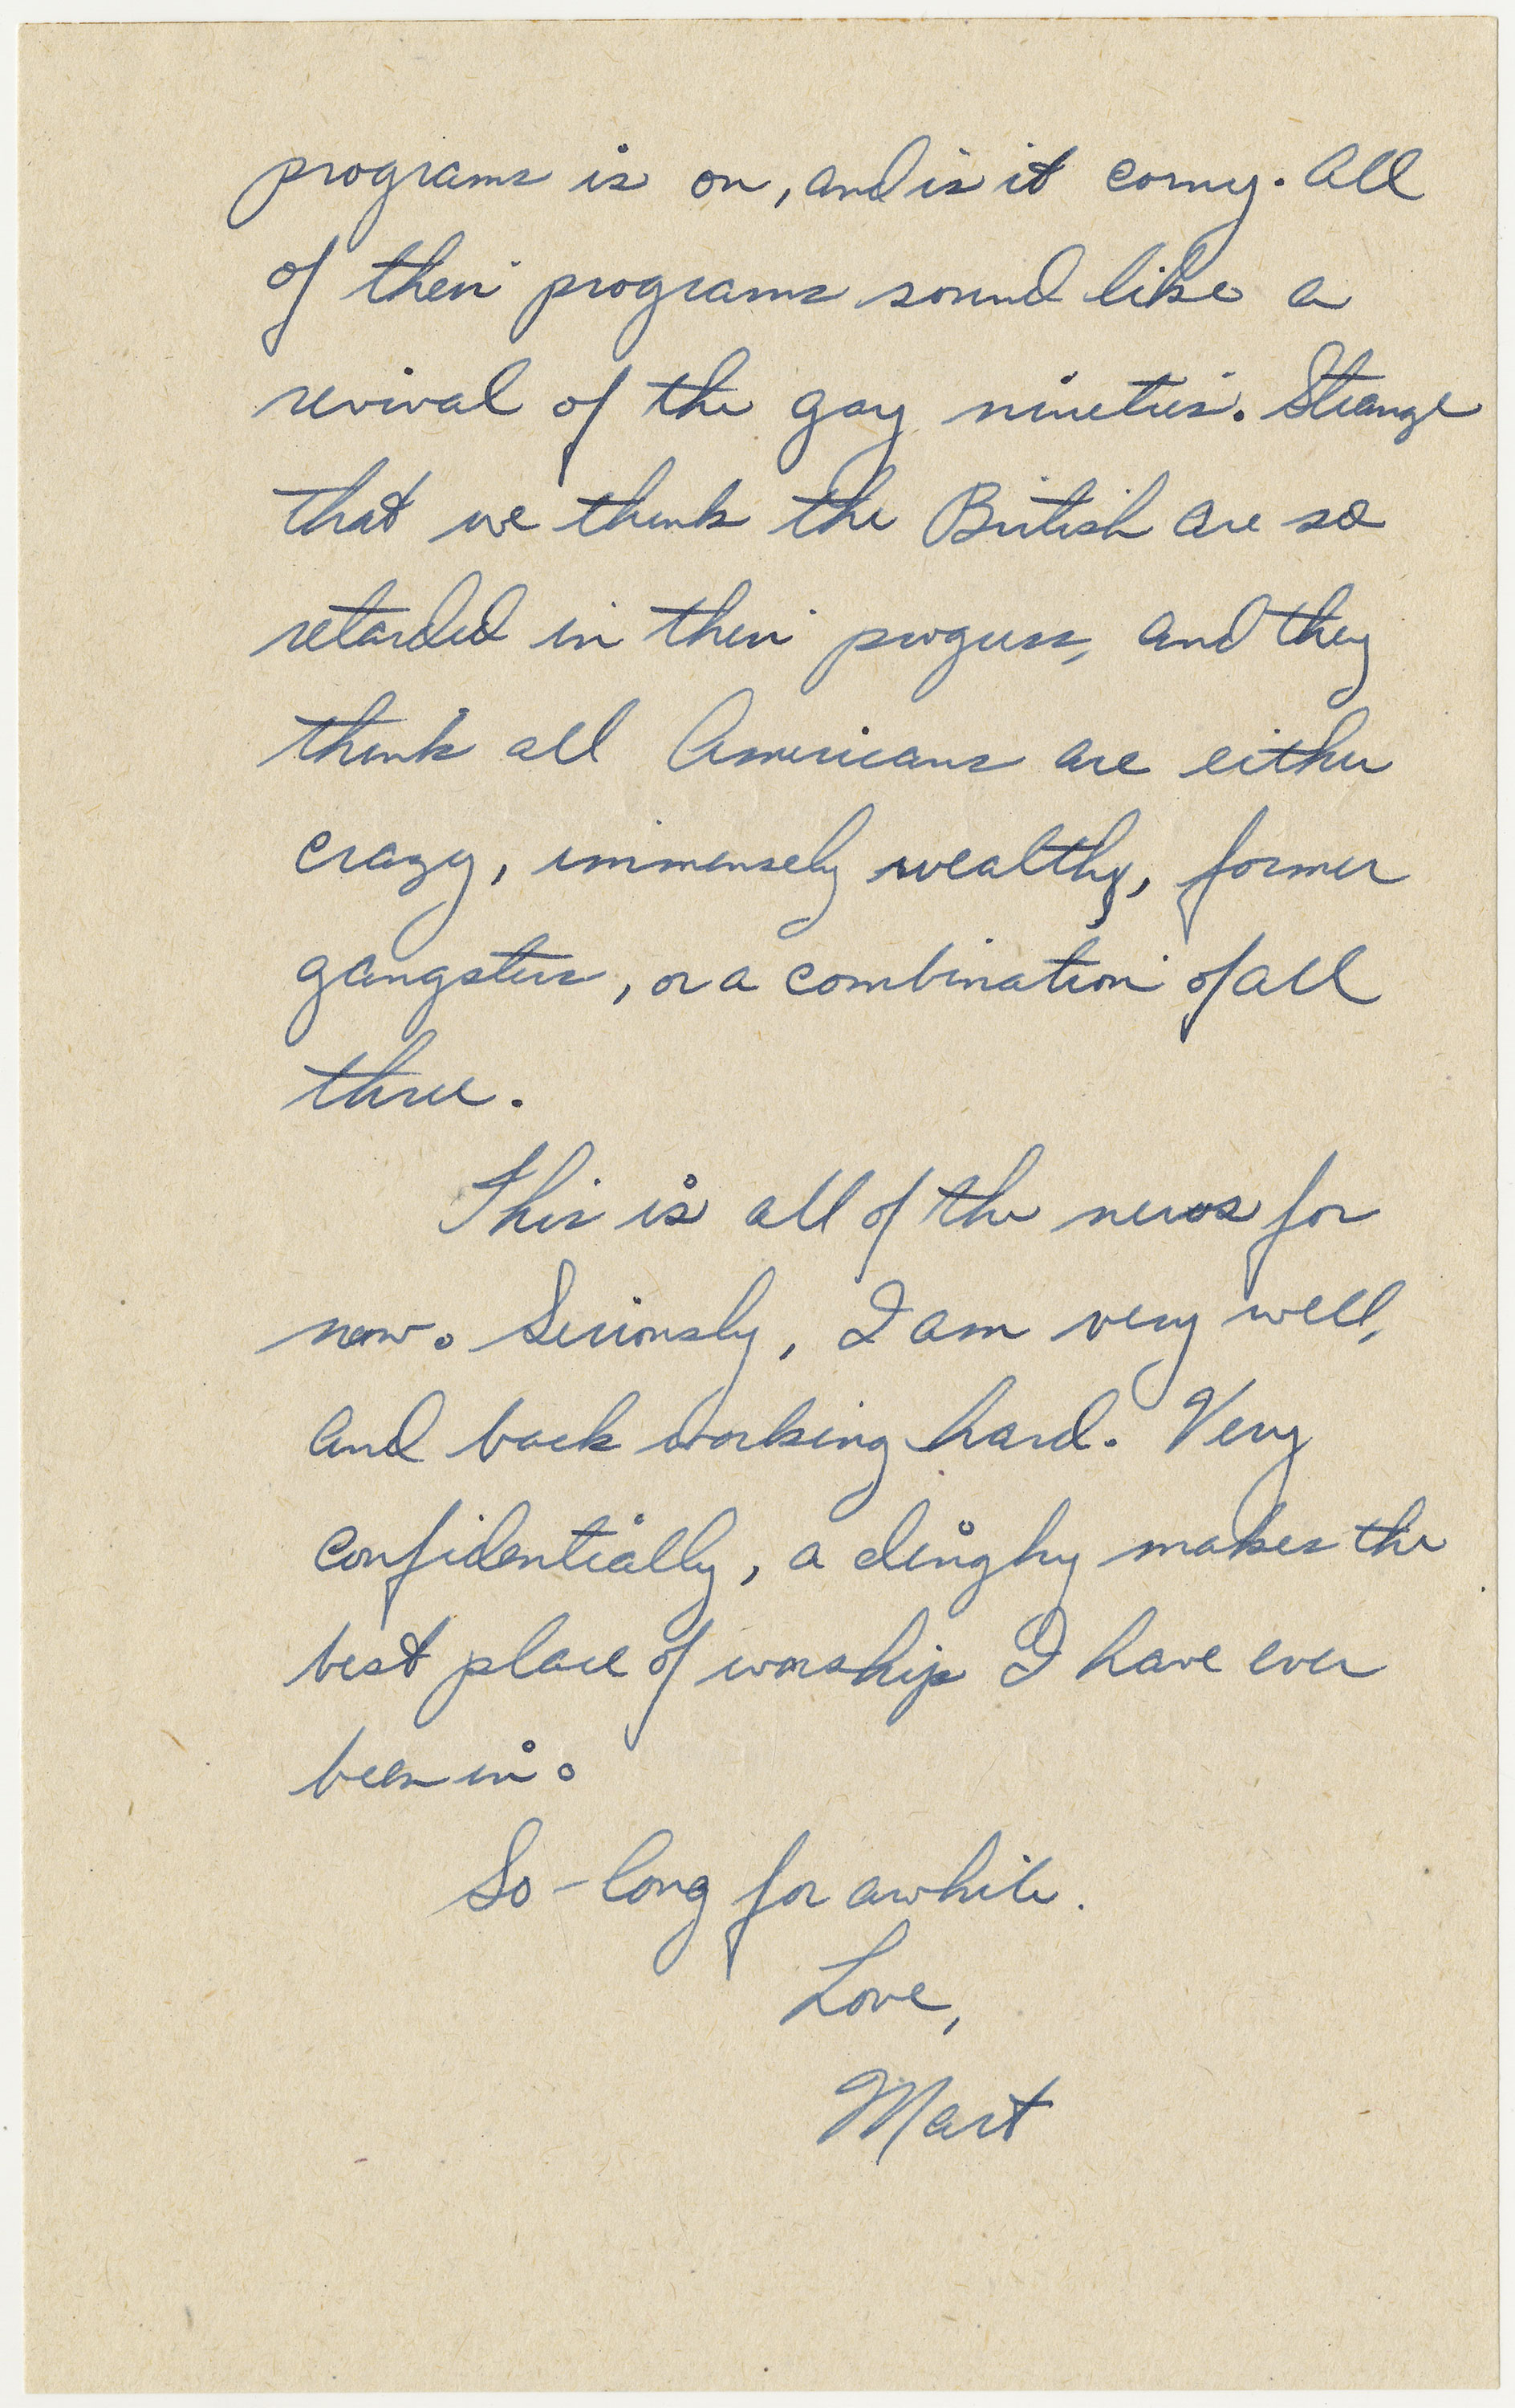 page 4 of letter written by Bischoff on May 12, 1944